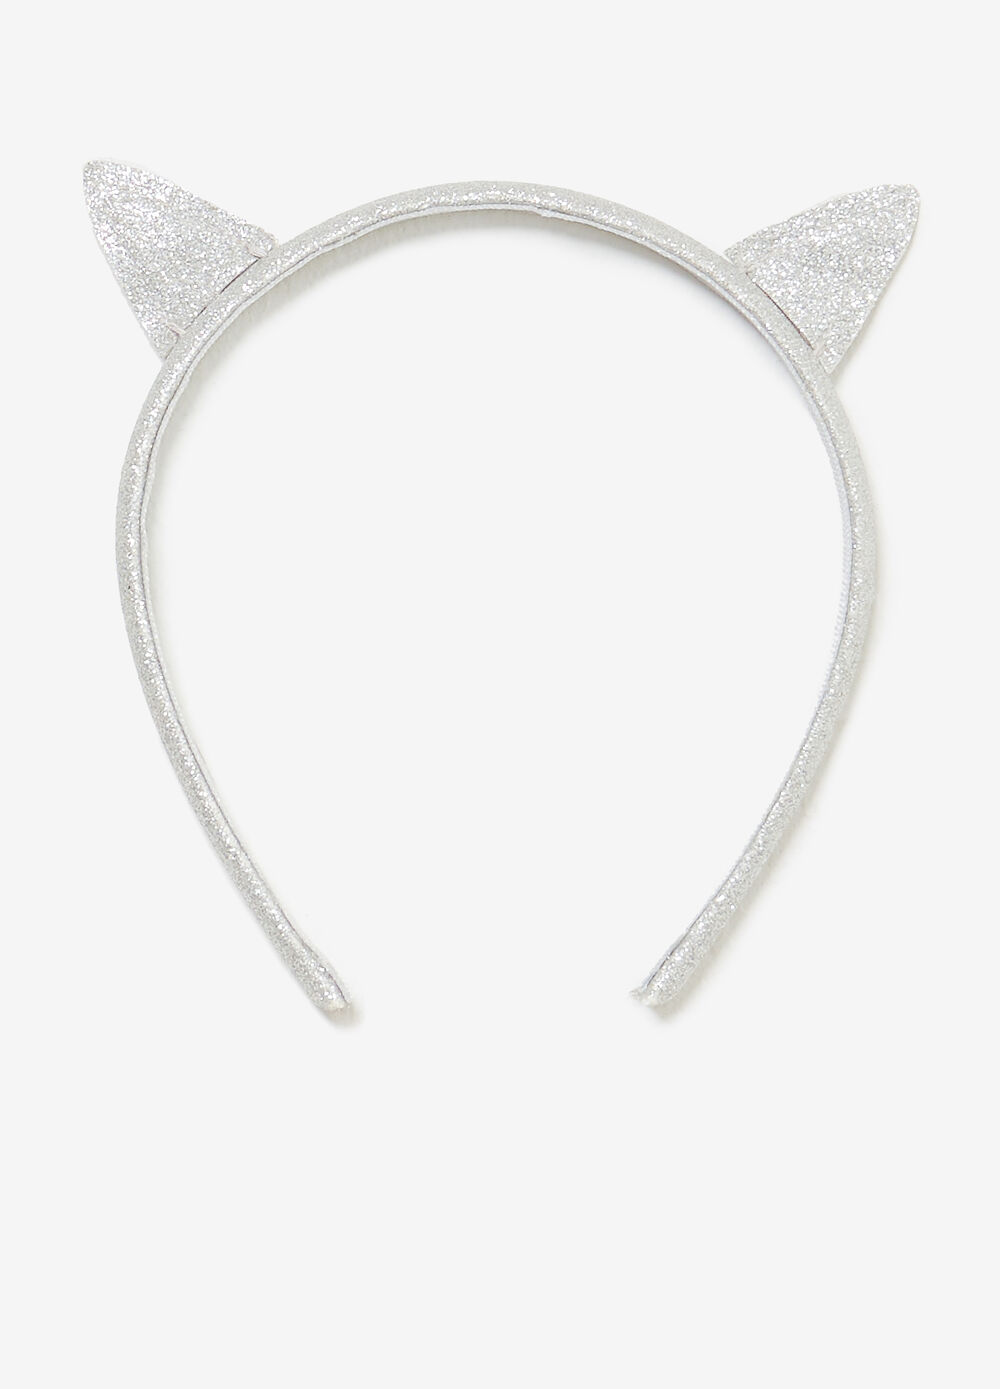 Hairband with ears